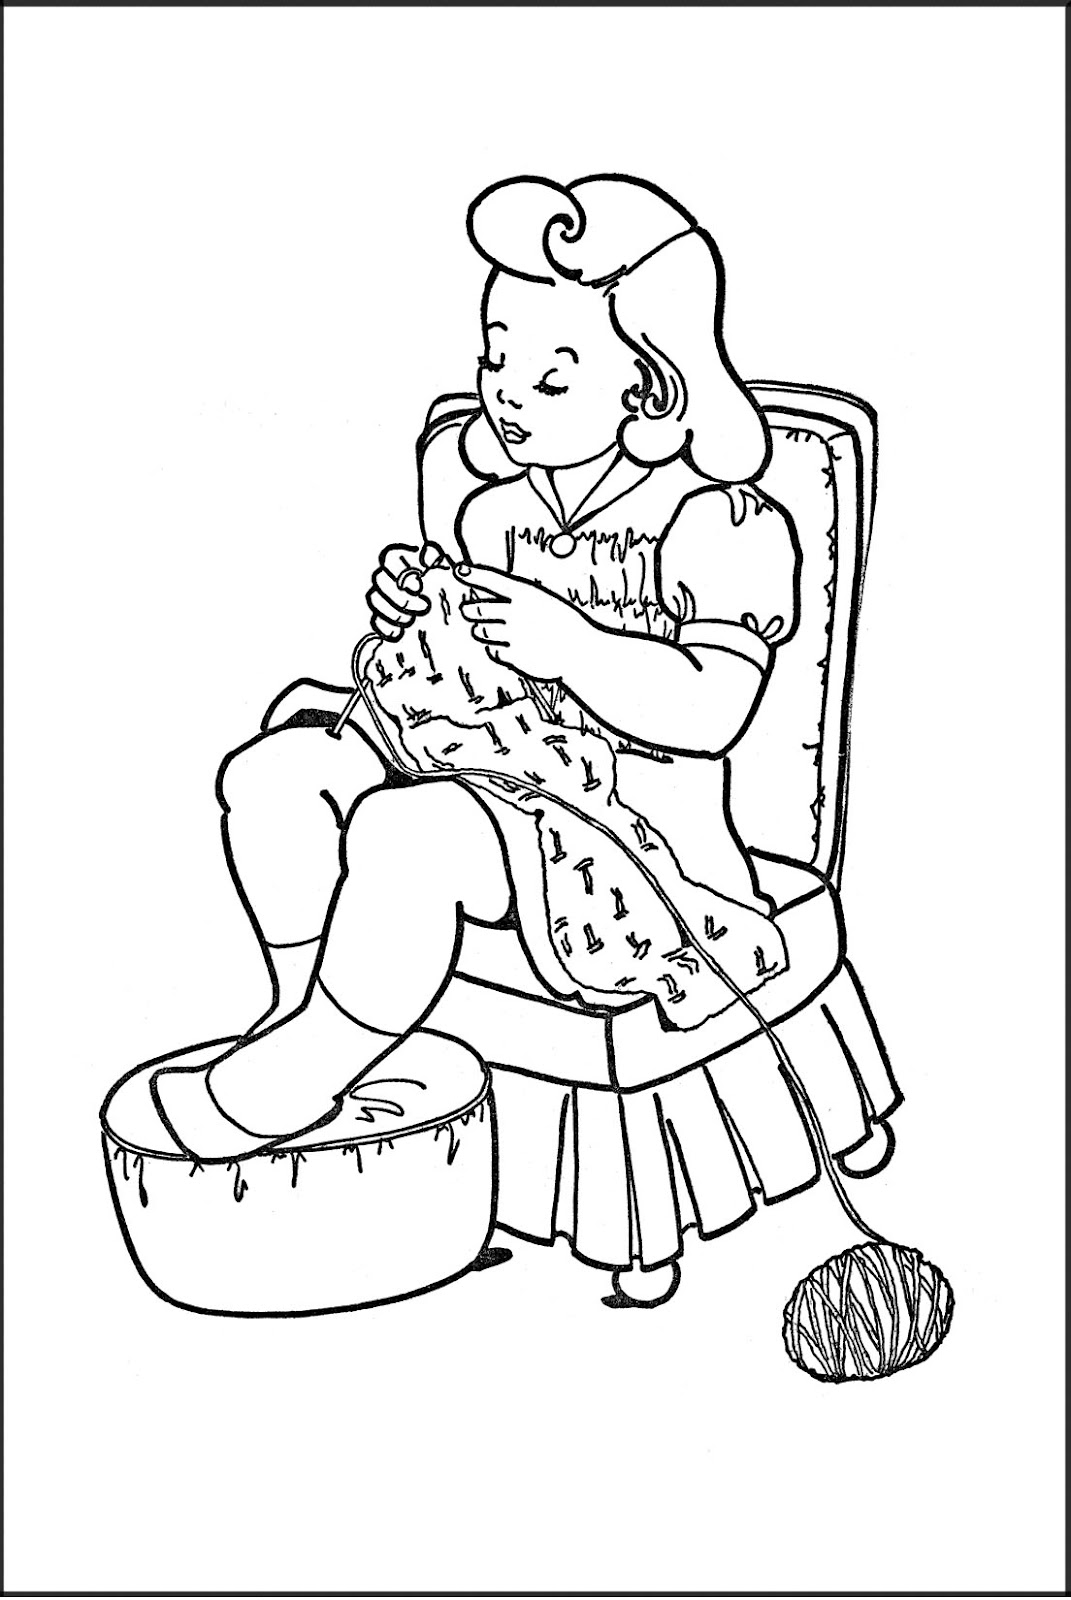 Kids Printable - Coloring Page - Girl Knitting - The Graphics Fairy